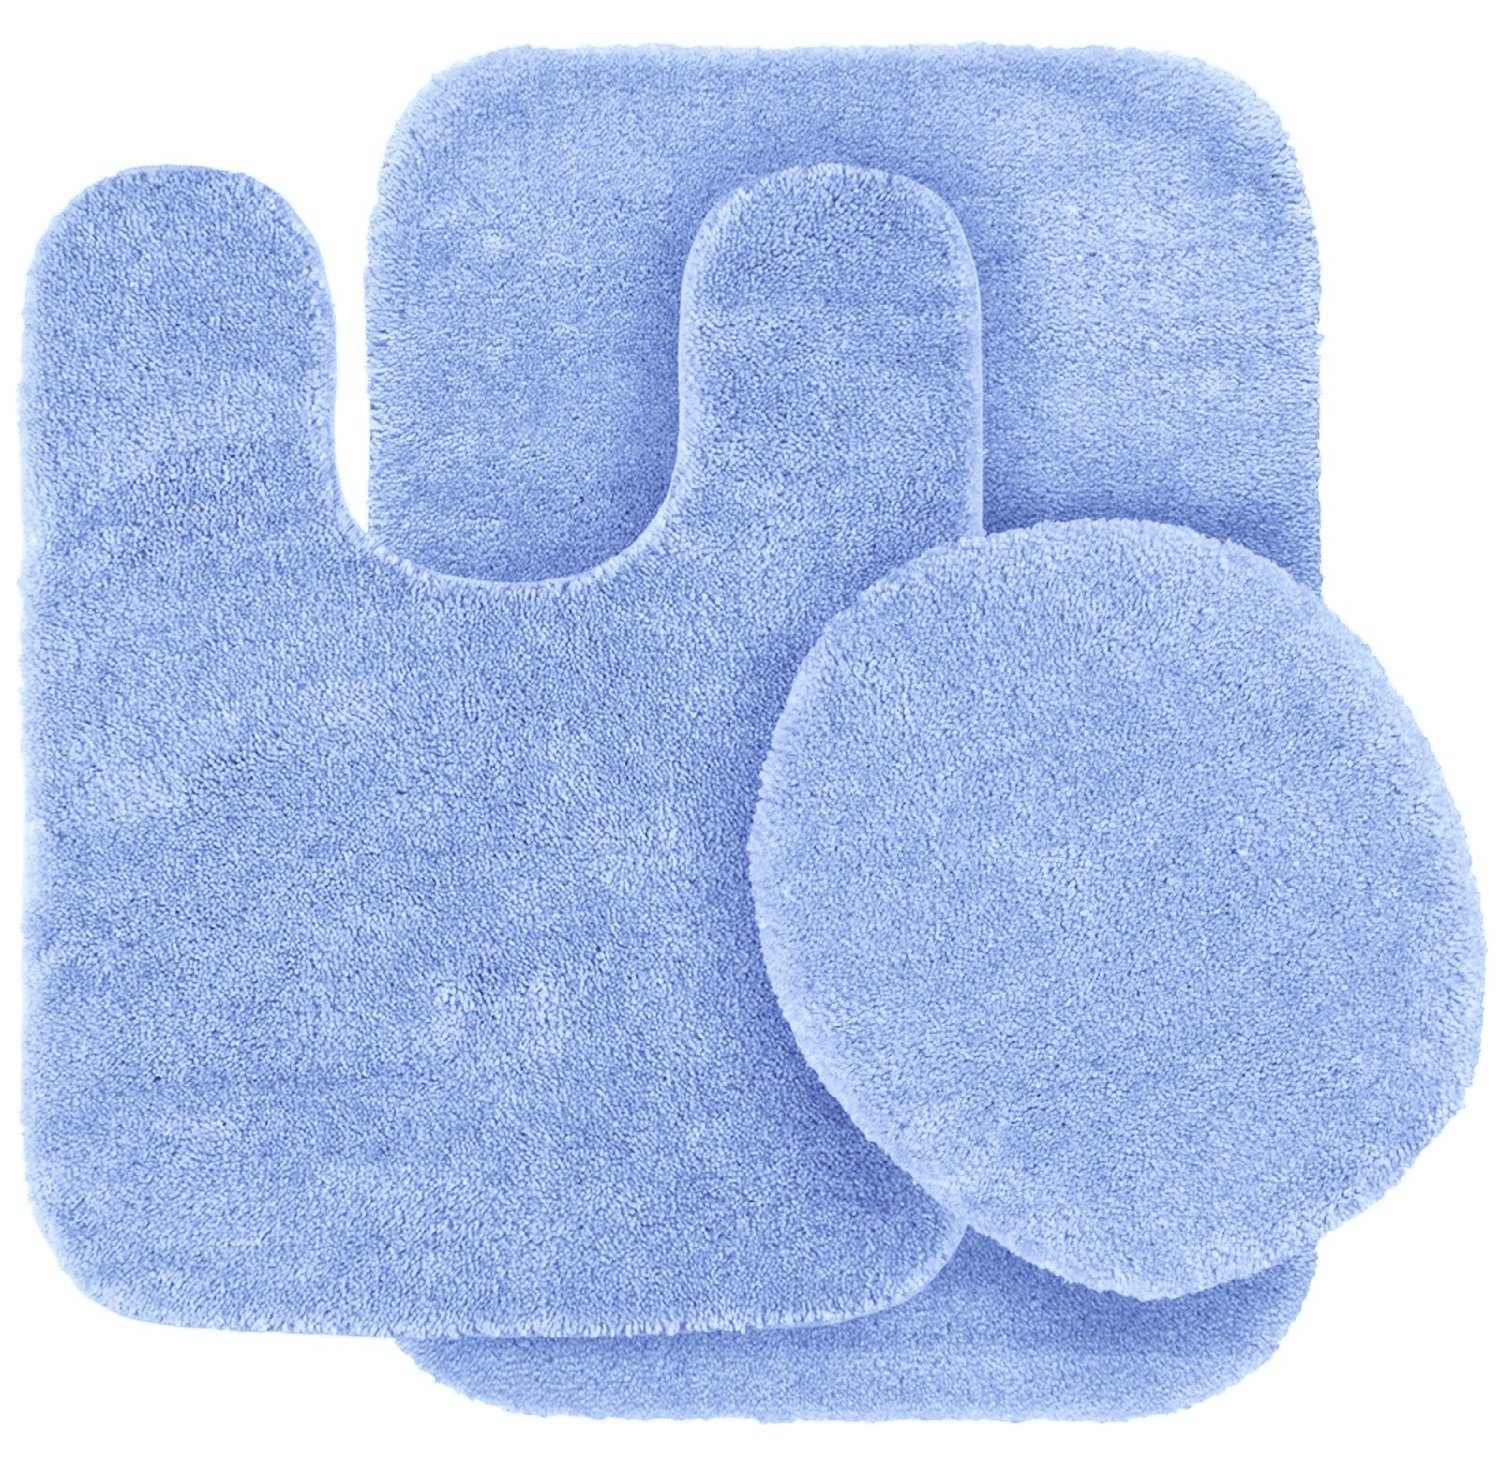 GorgeousHomeLinenDifferent Colors 3-Piece Bathroom Set Bath Mat, Contour, and Lid Cover, with Rubber Backing #6 (Light Blue) Gorgeous Home Linen